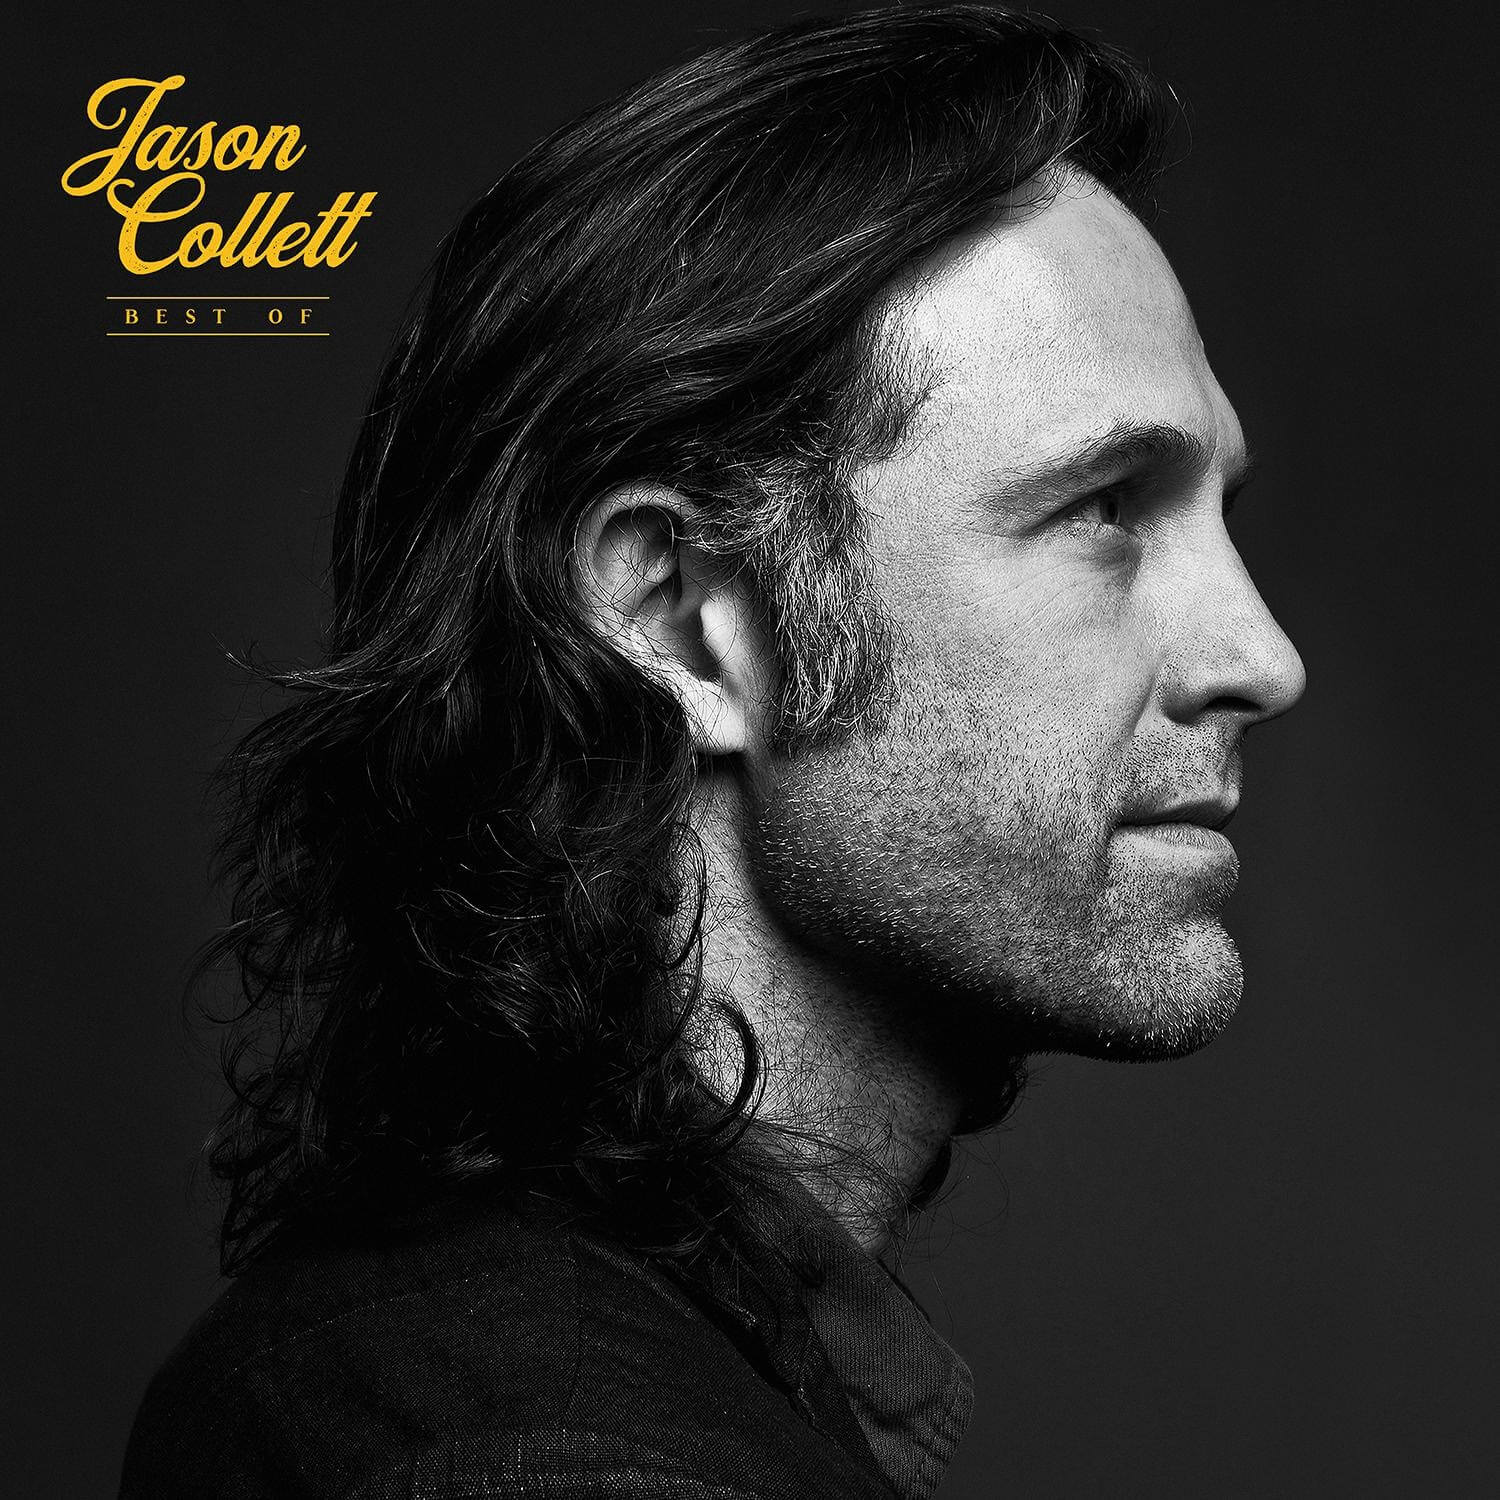 """Jason Collett will release his career-spanning Best Of album on March 19, highlights of the album include """"Crab Walking Home In The Rain"""""""